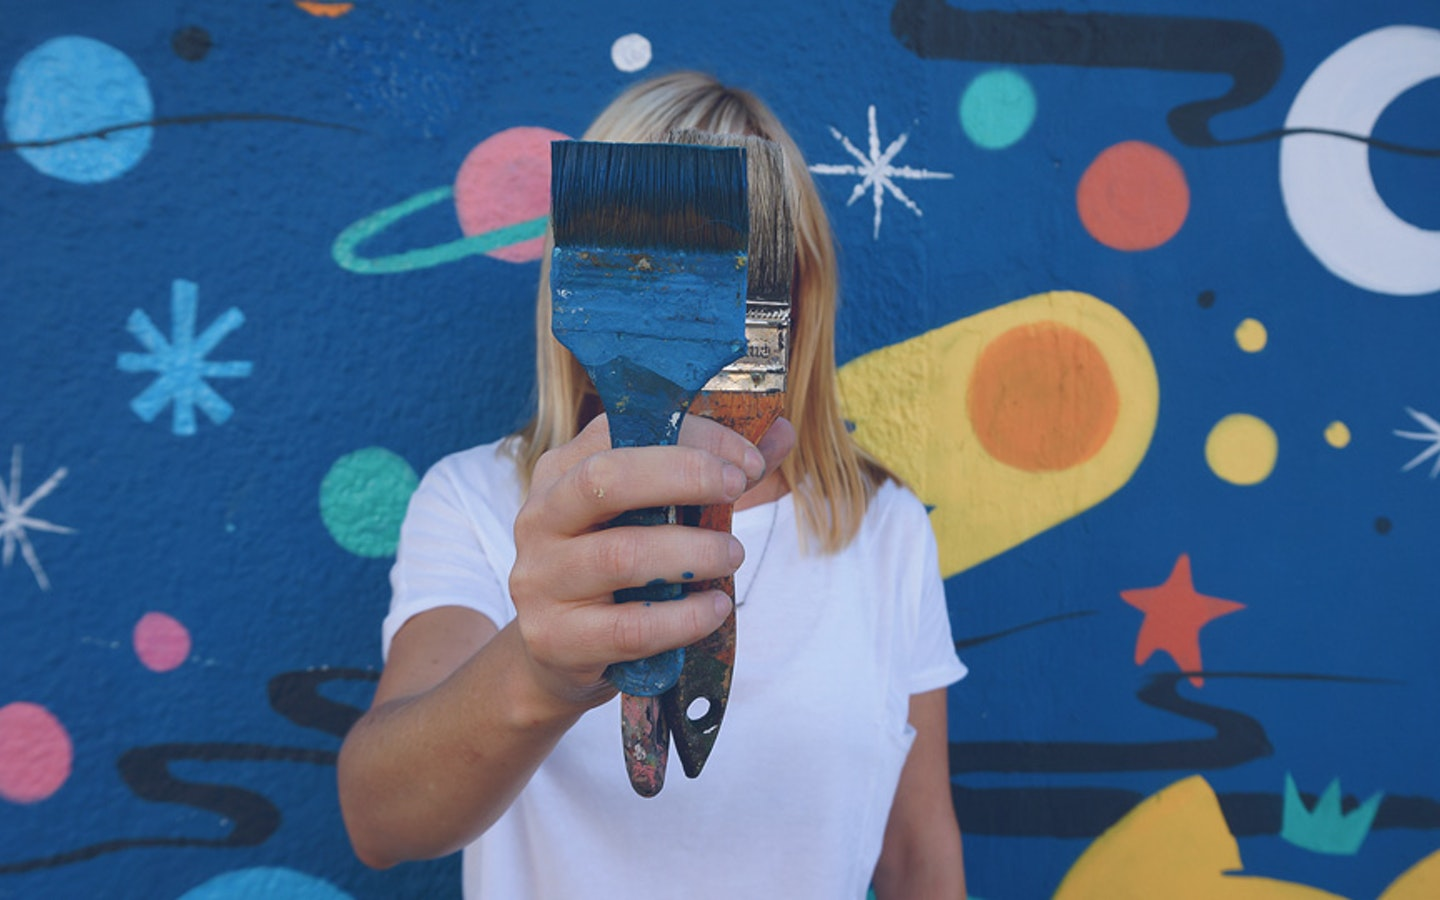 Make your own hand-painted artwork on the streets of Buenos Aires with urban art legend Pum Pum via Vacation with an Artist #creativevacations #vawaa #streetart #urbanart #buenosaires #slowtravel #wallmurals #creativity #argentina